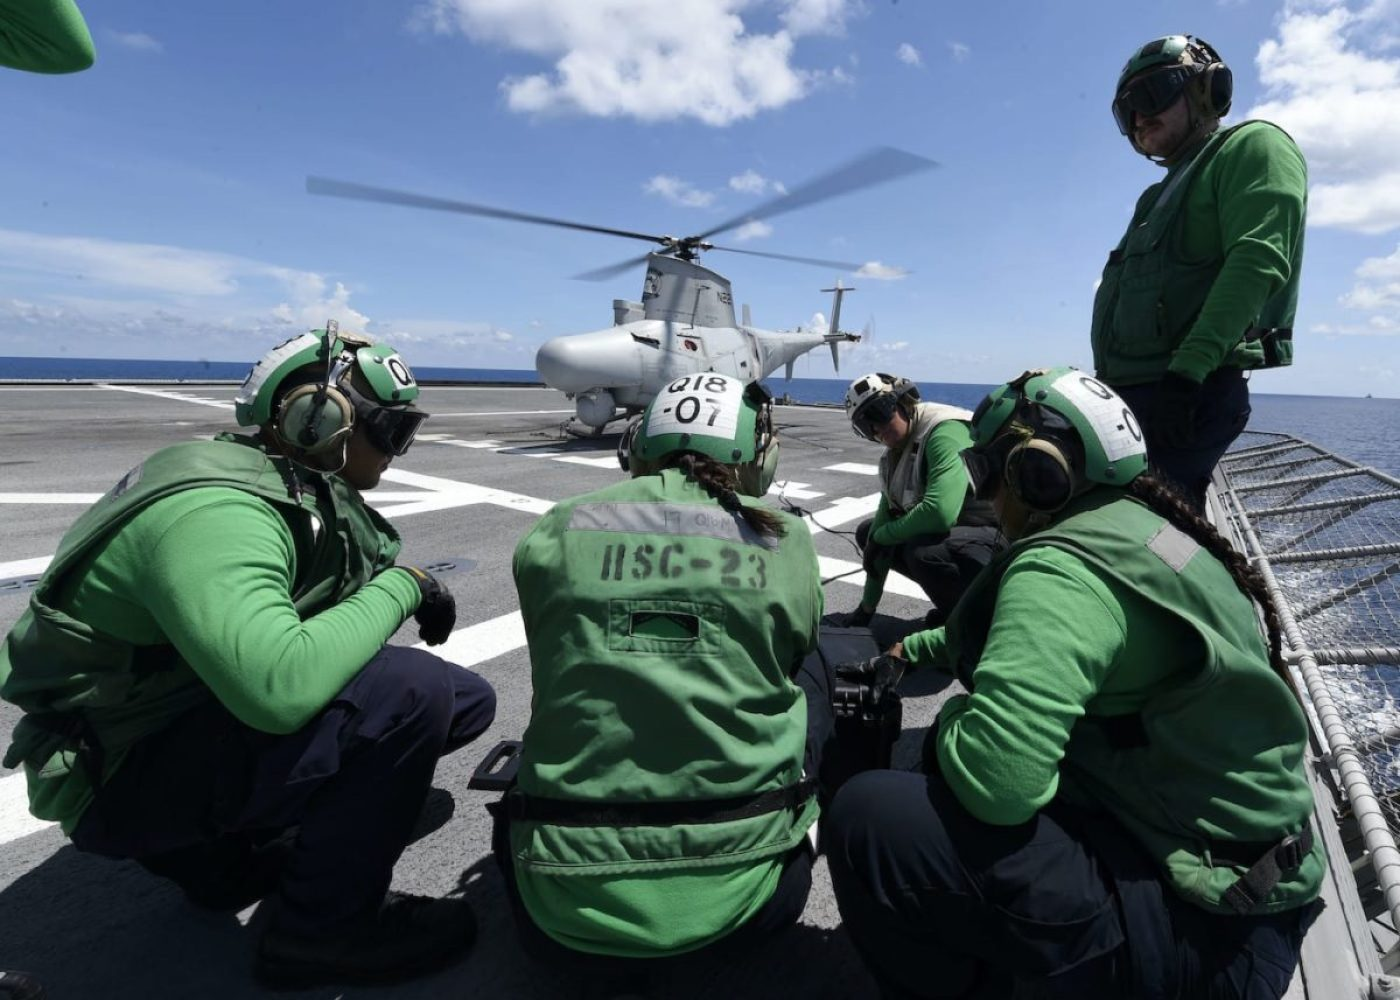 """Sailors assigned to the """"Wildcards"""" of Helicopter Sea Combat Squadron (HSC) 23 run diagnostics on a MQ-8B unmanned helicopter on the flight deck of the Independence-variant littoral combat ship USS Gabrielle Giffords (LCS 10), May 14, 2020. (U.S. Navy photo by Mass Communication Specialist 2nd Class Brenton Poyser)"""